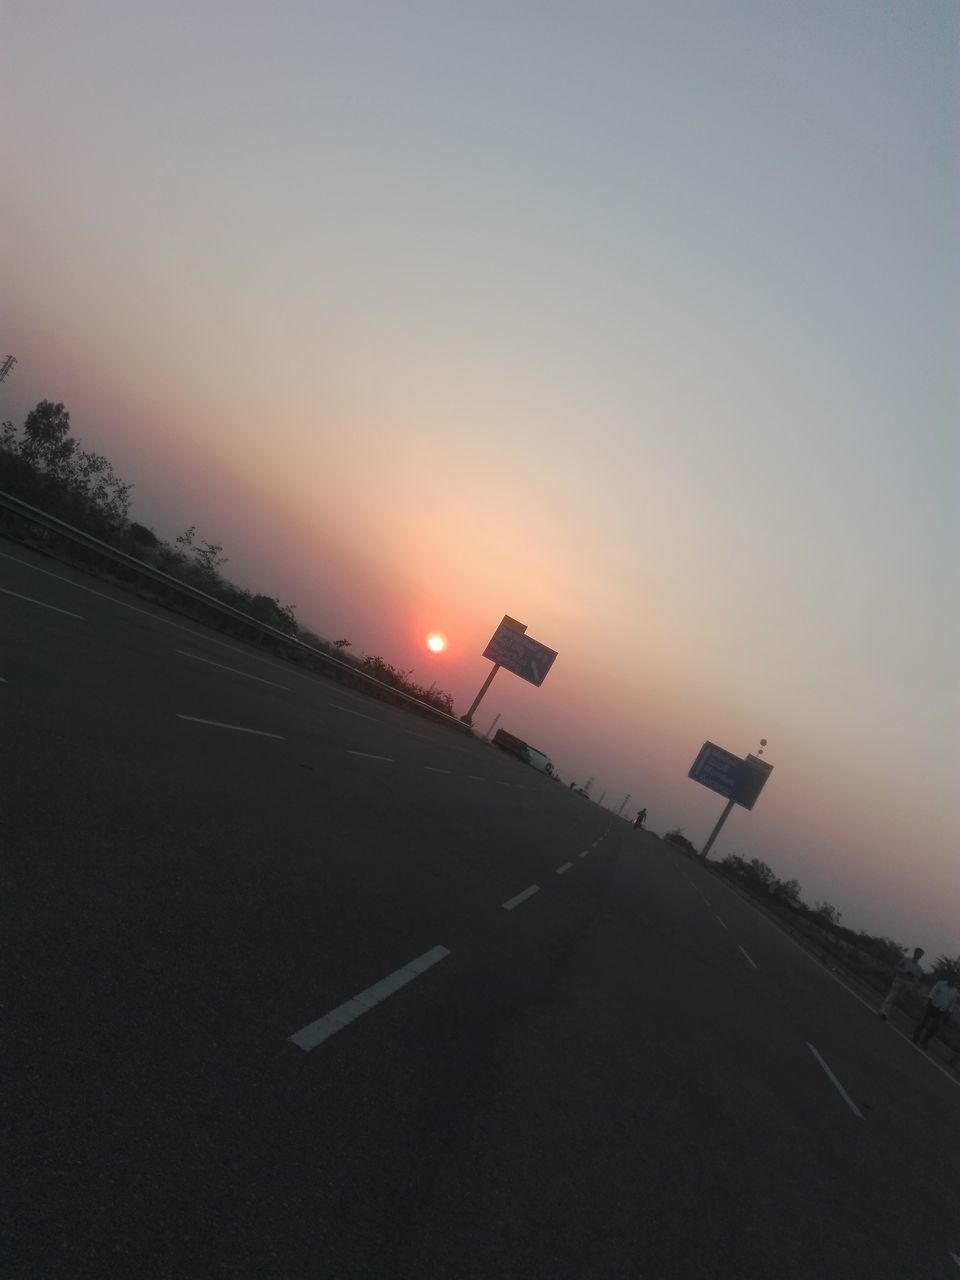 transportation, sunset, road, no people, sun, outdoors, sky, road sign, nature, day